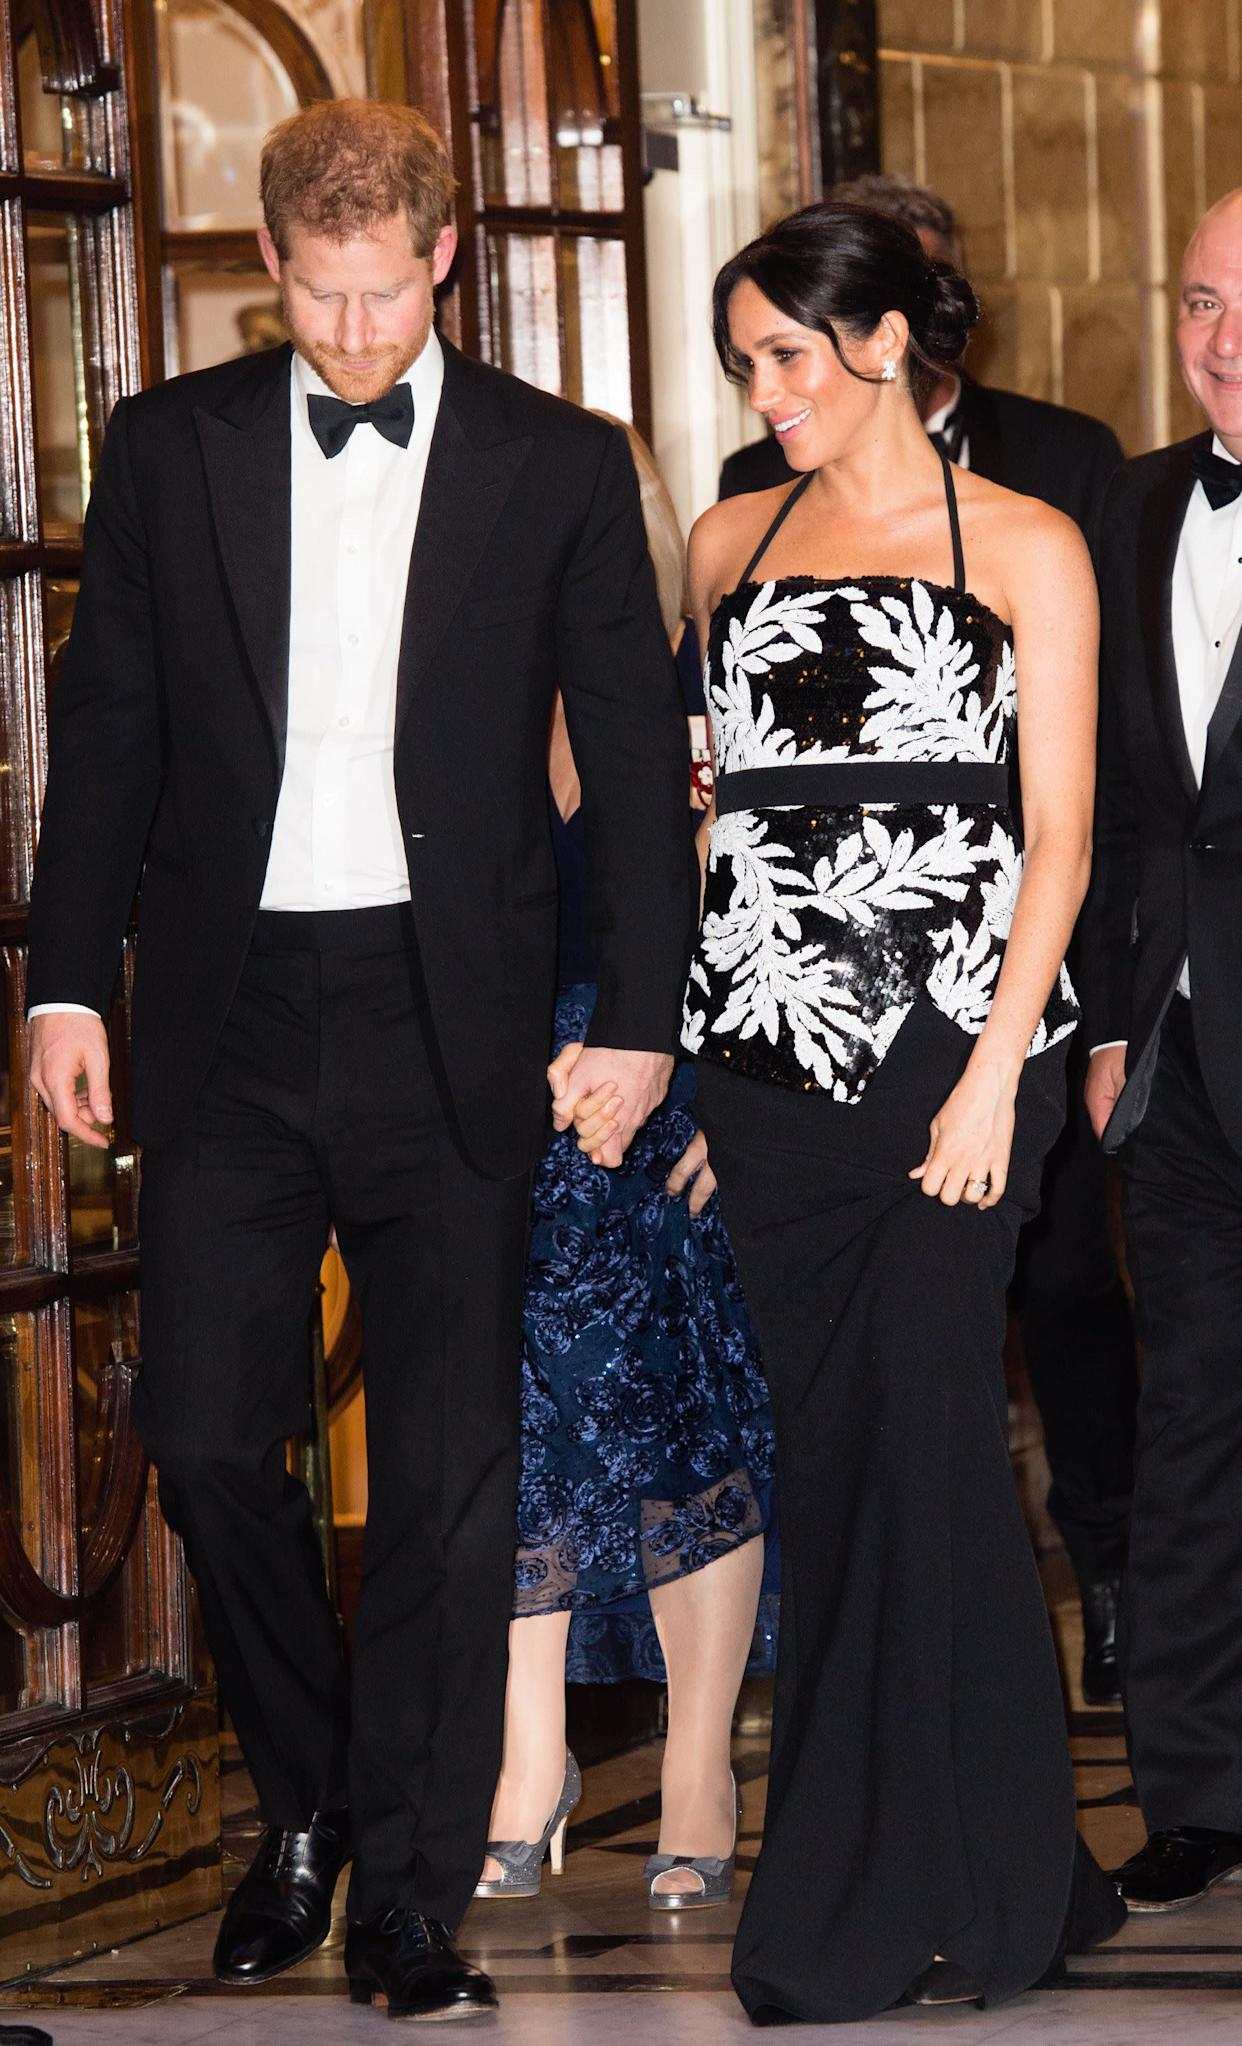 Meghan, Duchess of Sussex, and Prince Harry, Duke of Sussex, attend The Royal Variety Performance 2018 at London Palladium on Nov. 19.